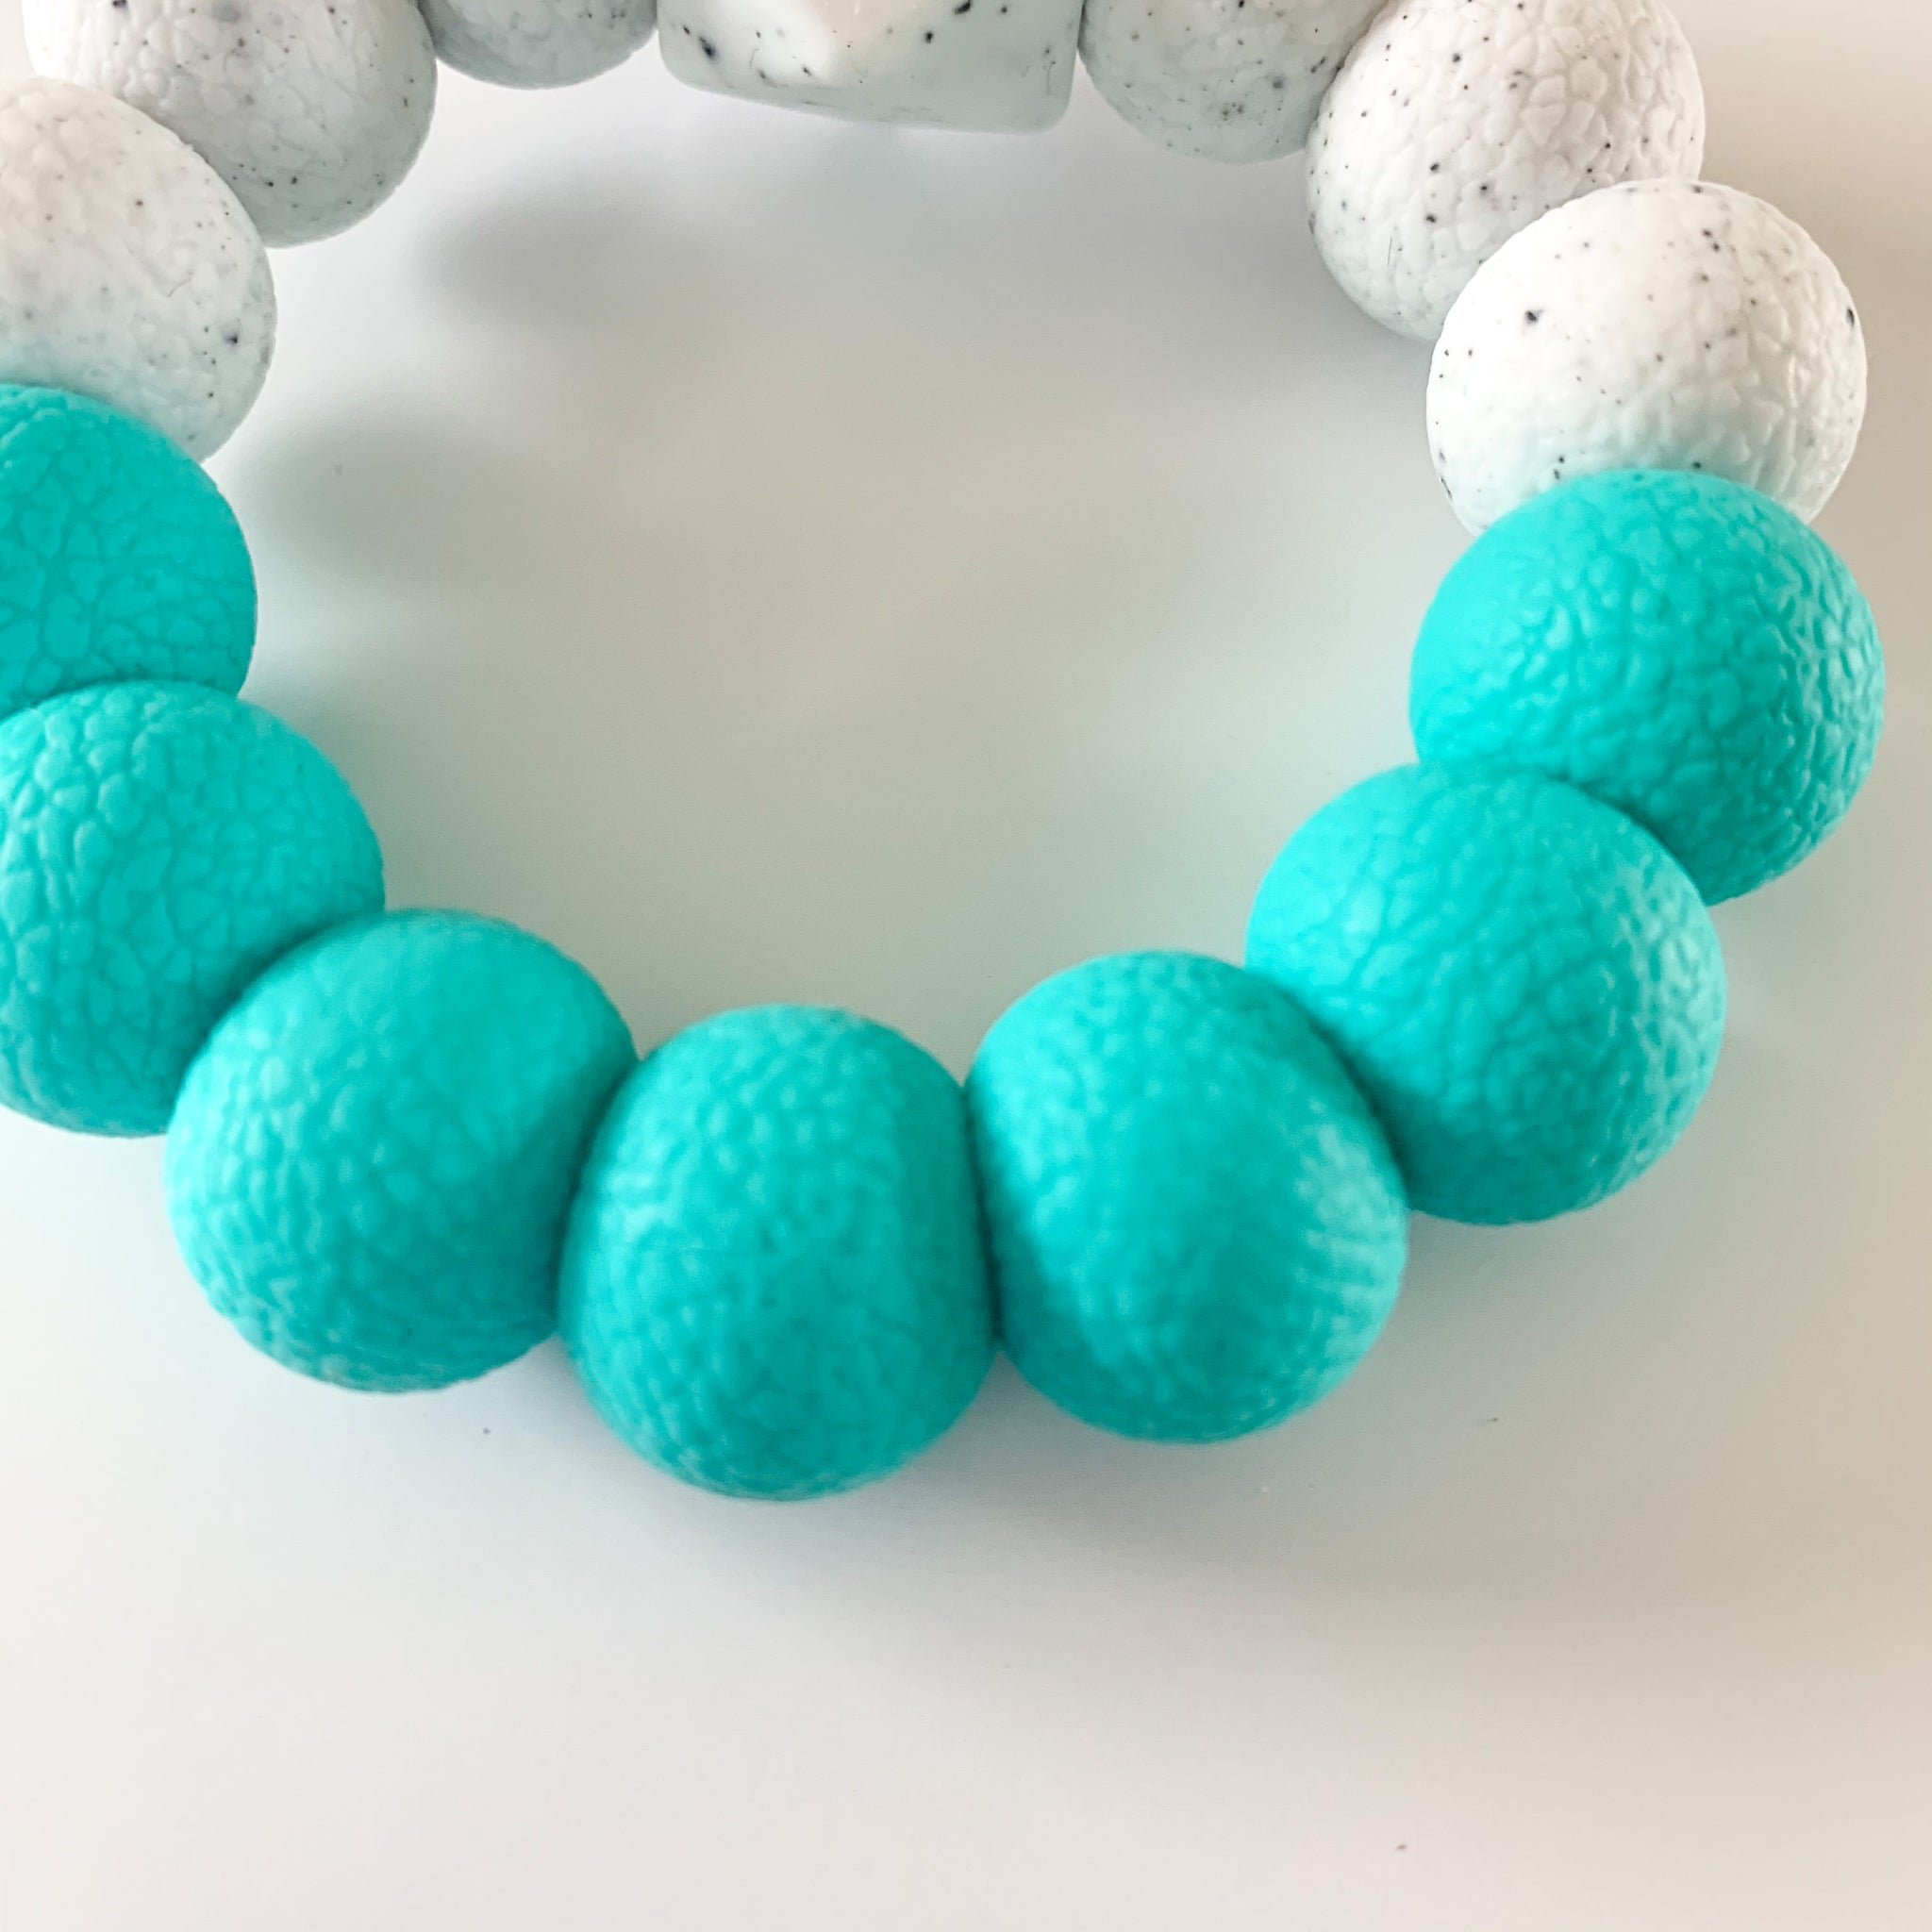 Turquoise *Textured* Freezer Teether